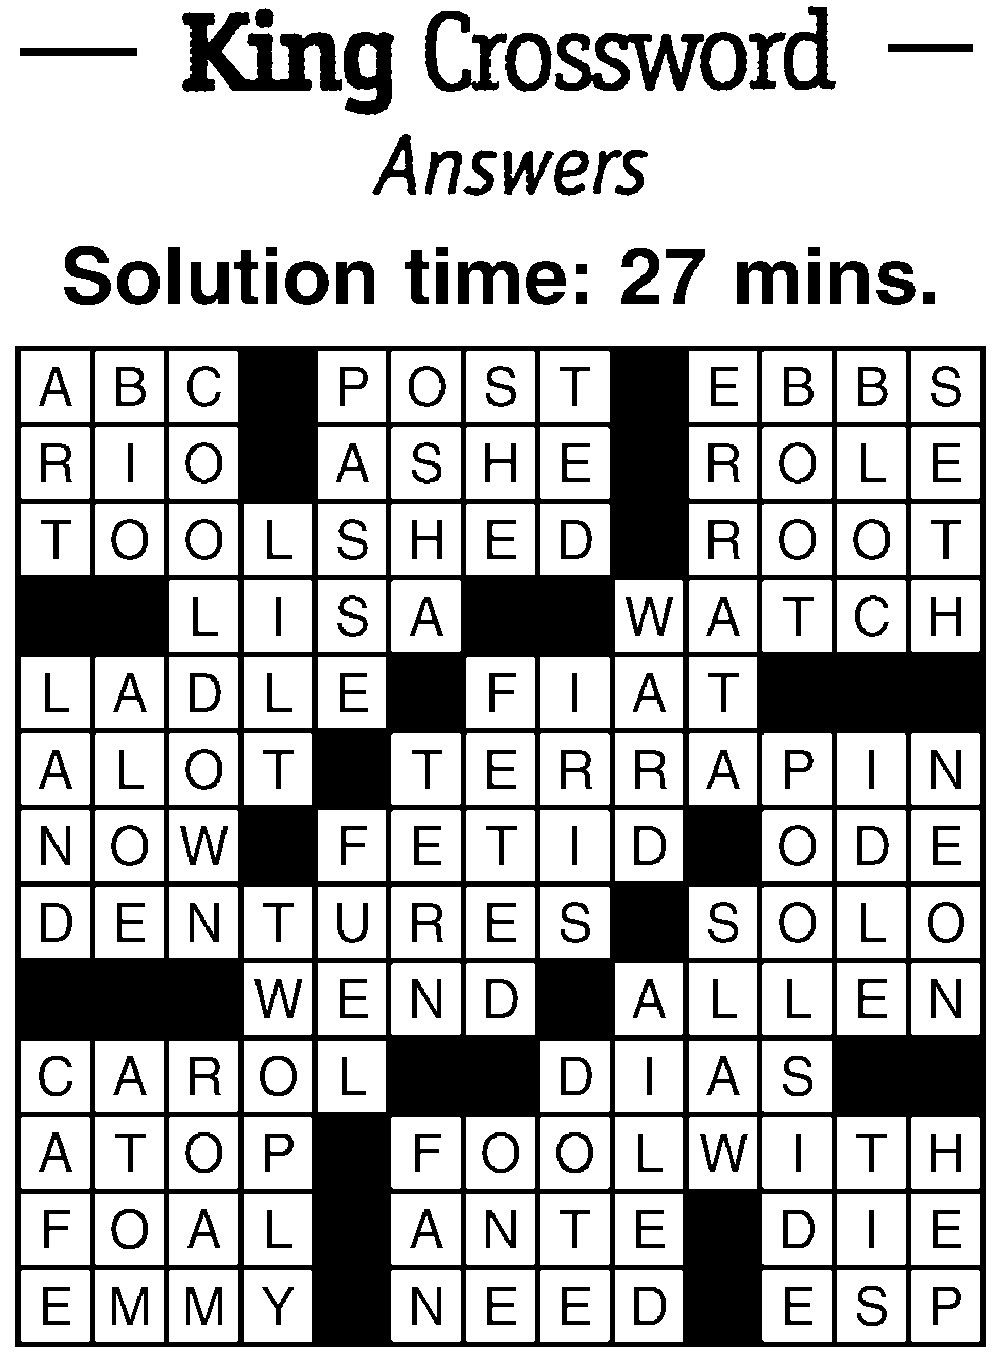 Crossword Answers 3 22